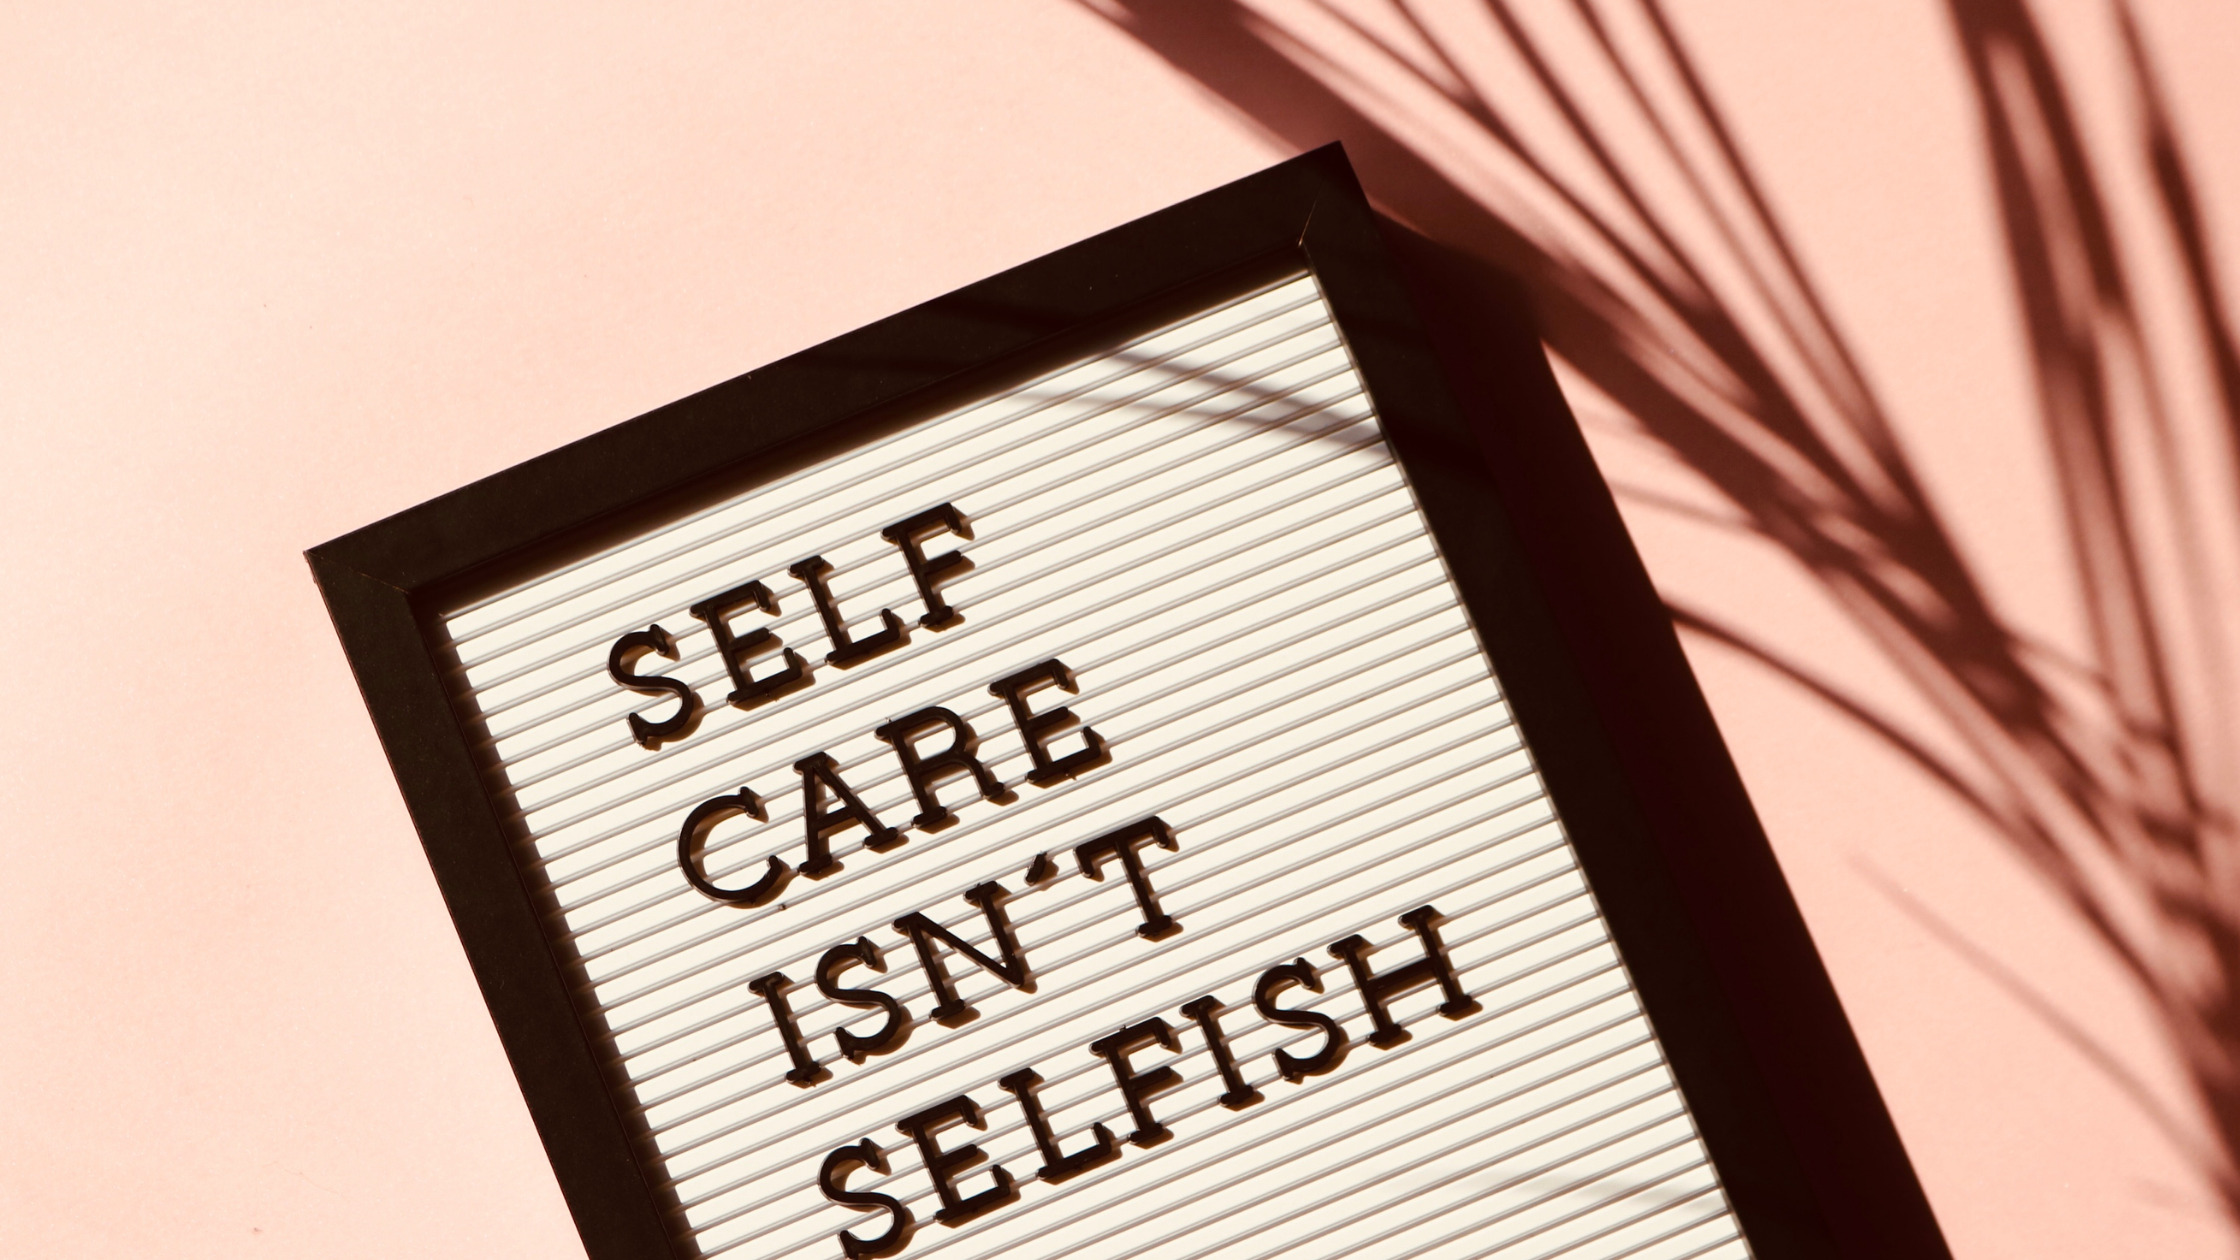 What Is Self-Compassion And How Can We Practice It